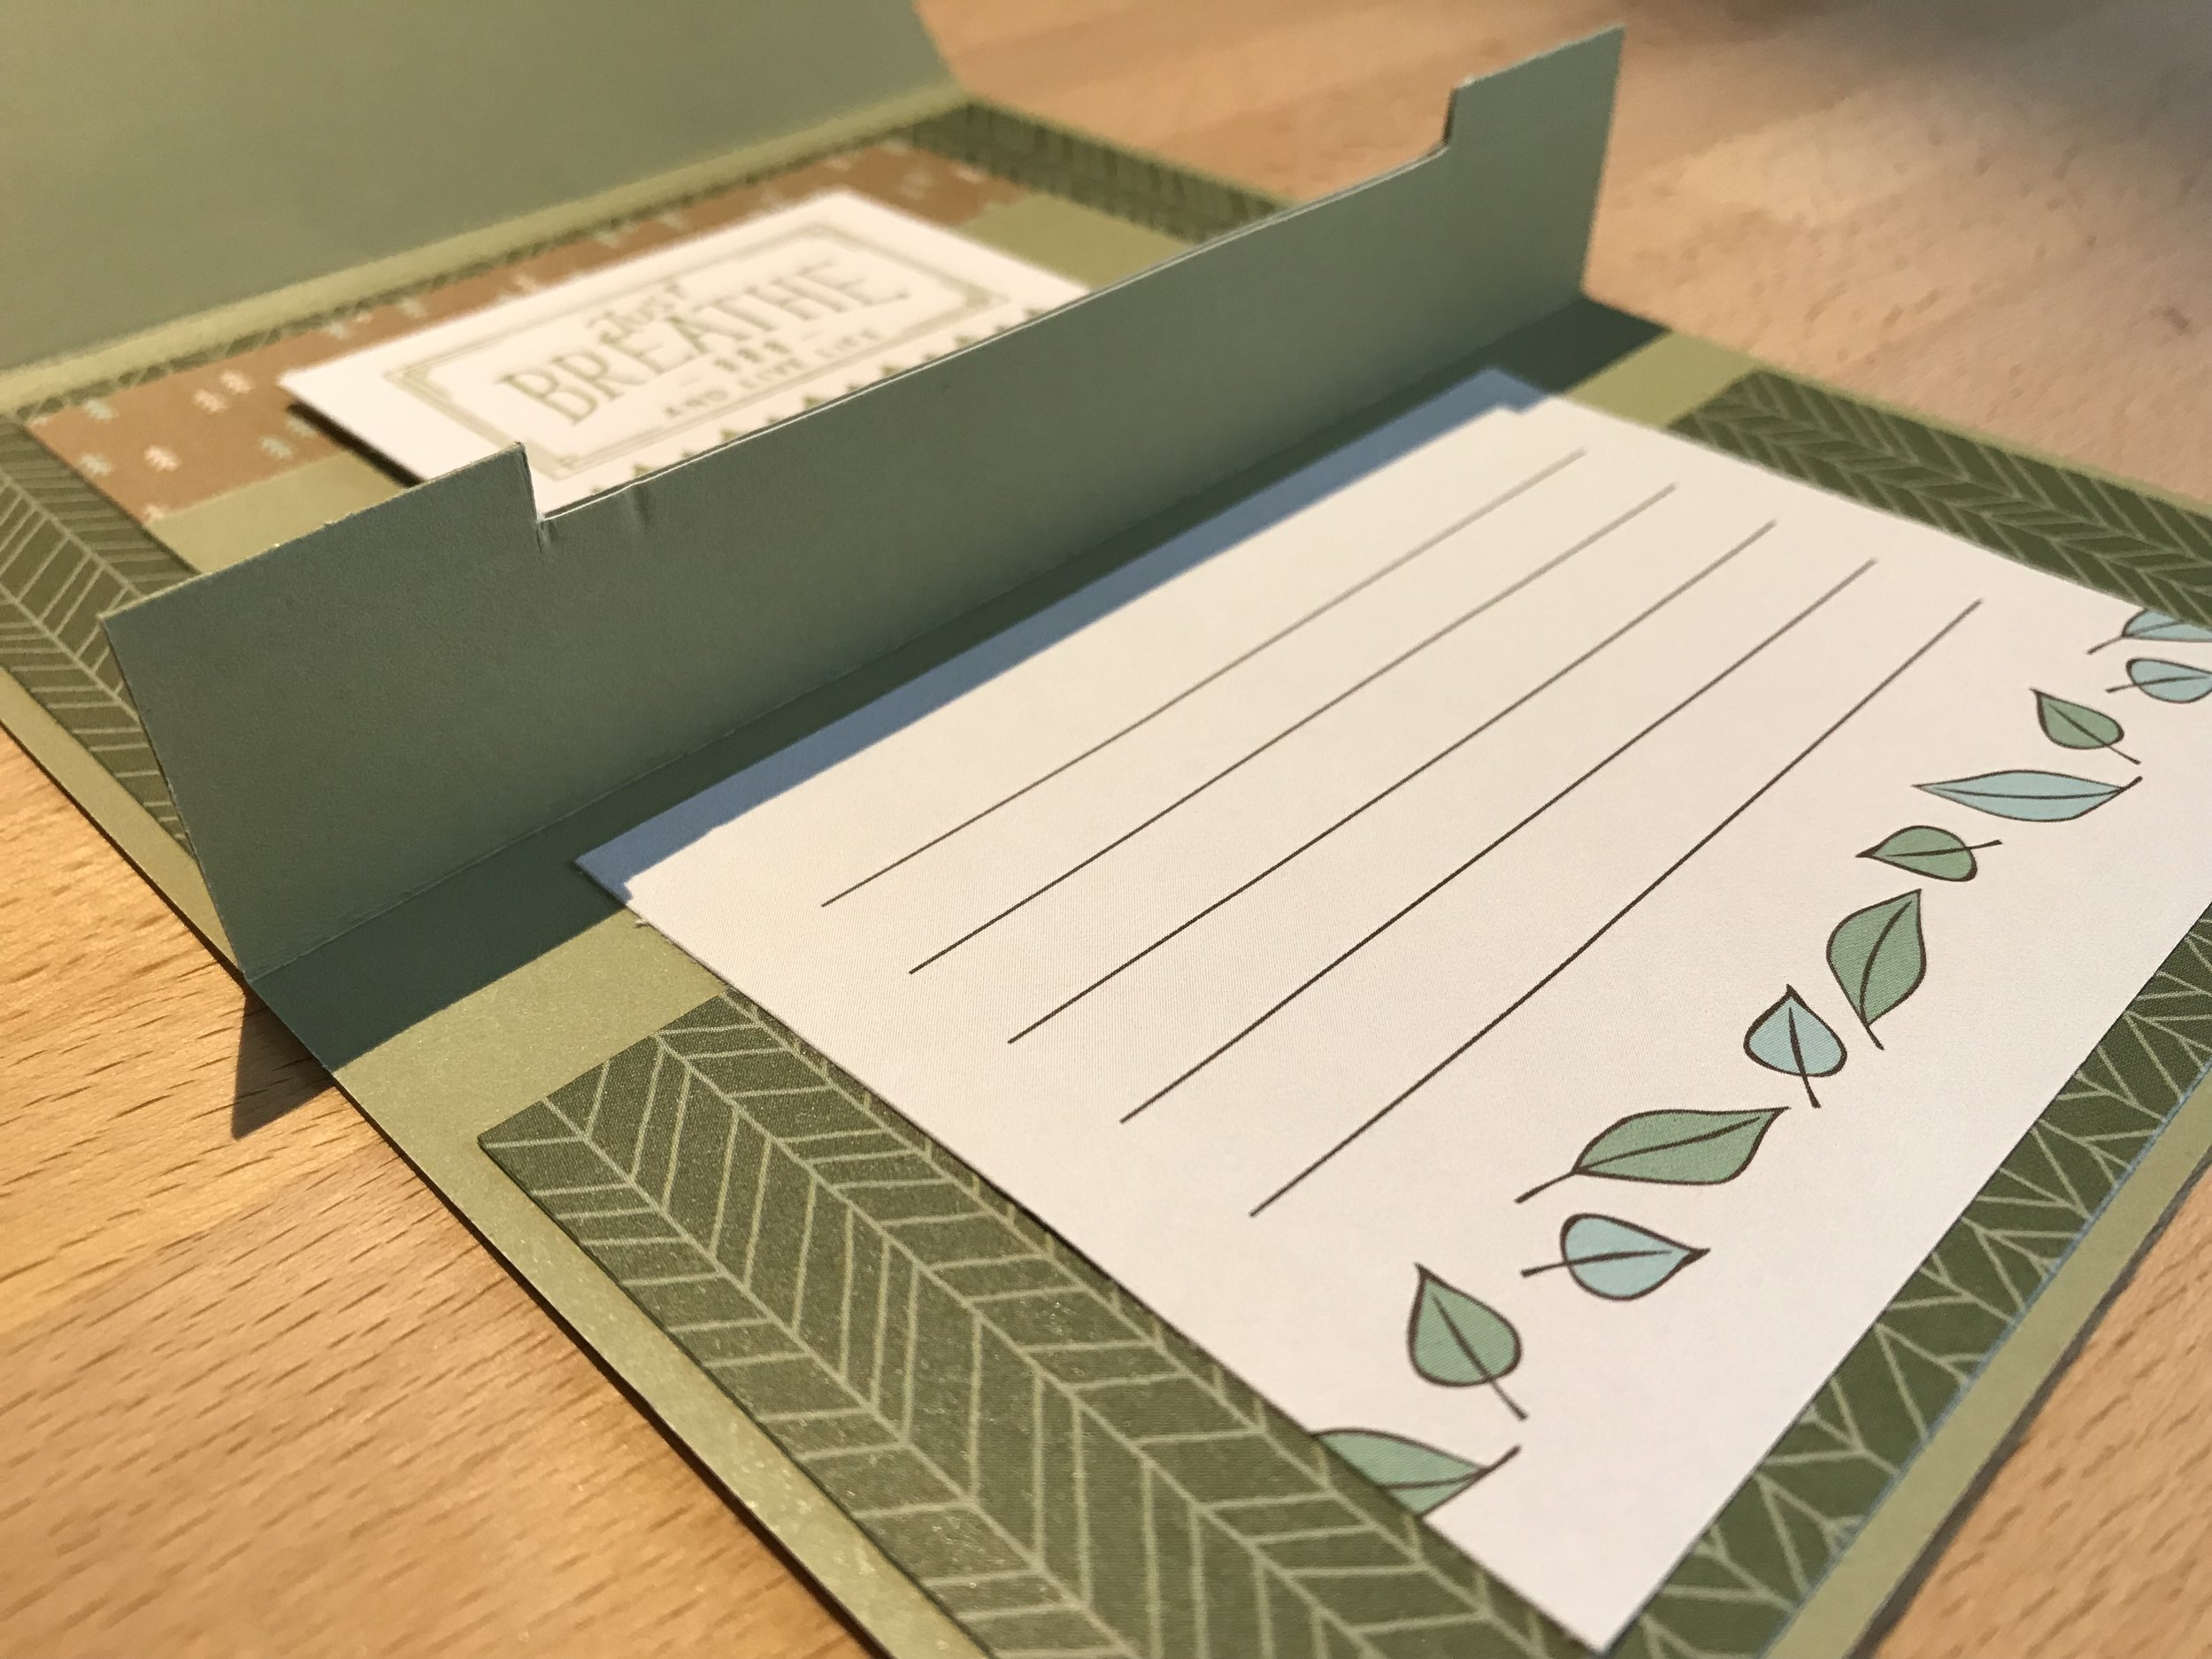 Fresh Air Gift Card Holder (CC tutorial) inside angle 2.JPG